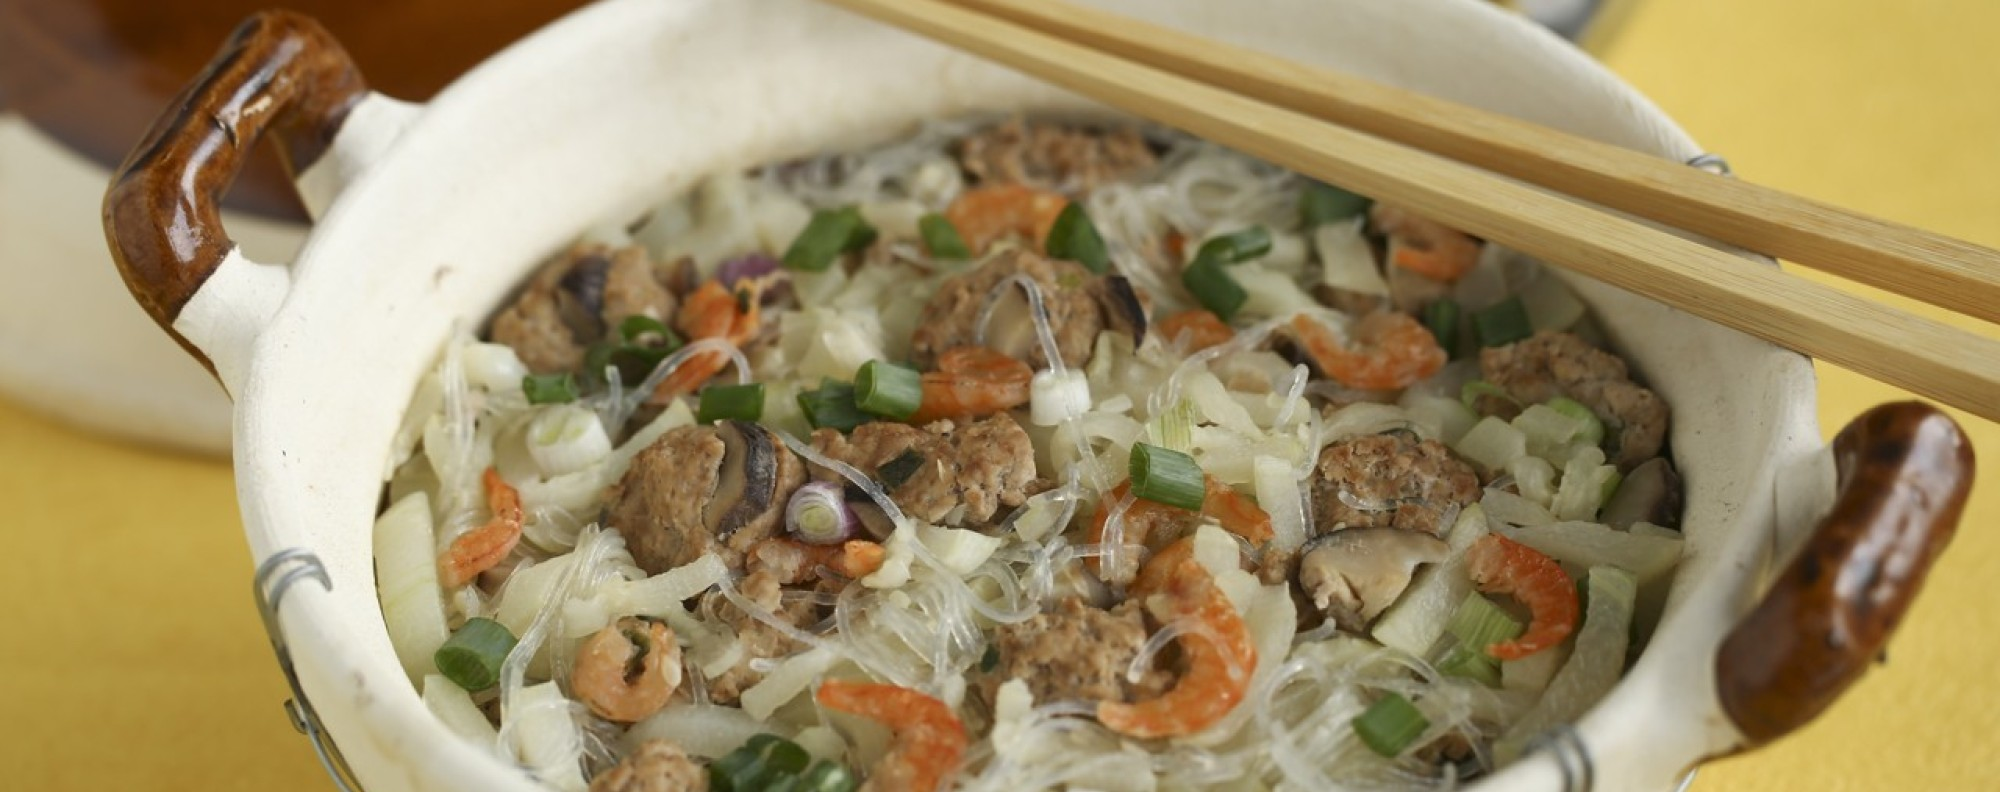 Susan jungs recipes for cooling melon dishes to beat the hong fuzzy melon with dried shrimp pork meatballs and glass noodles forumfinder Image collections